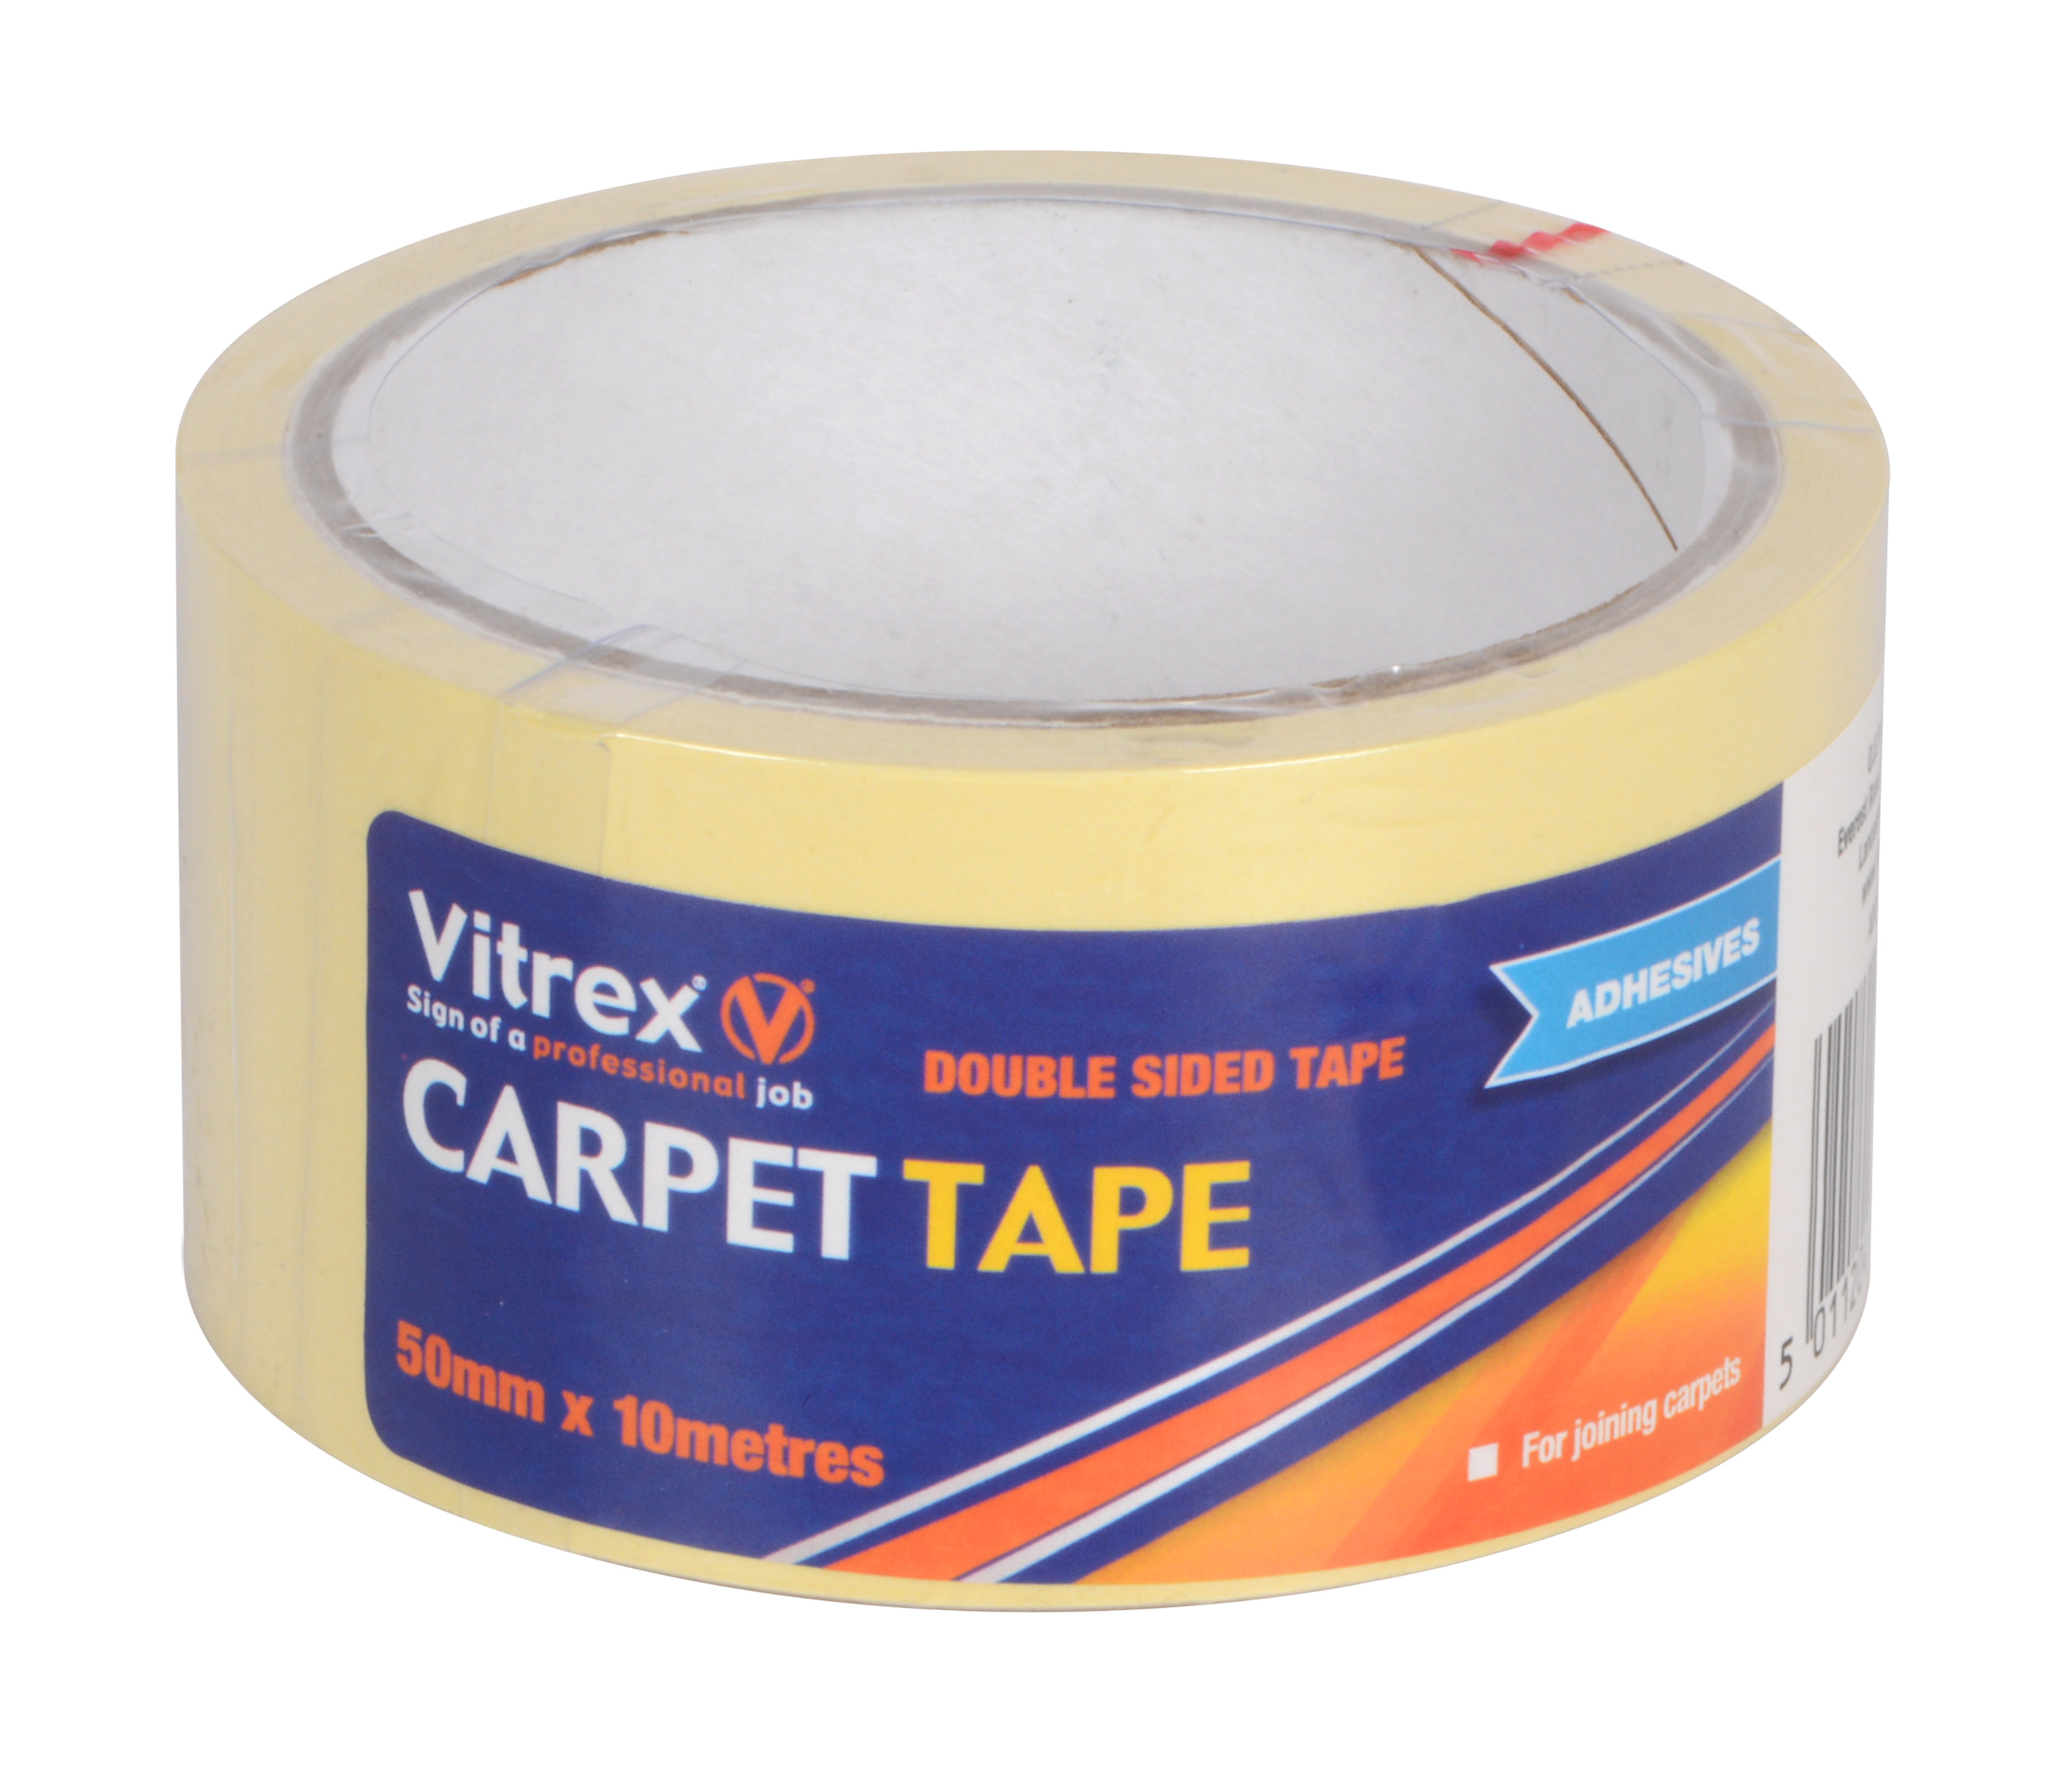 Carpet Tape 50mm x 10m